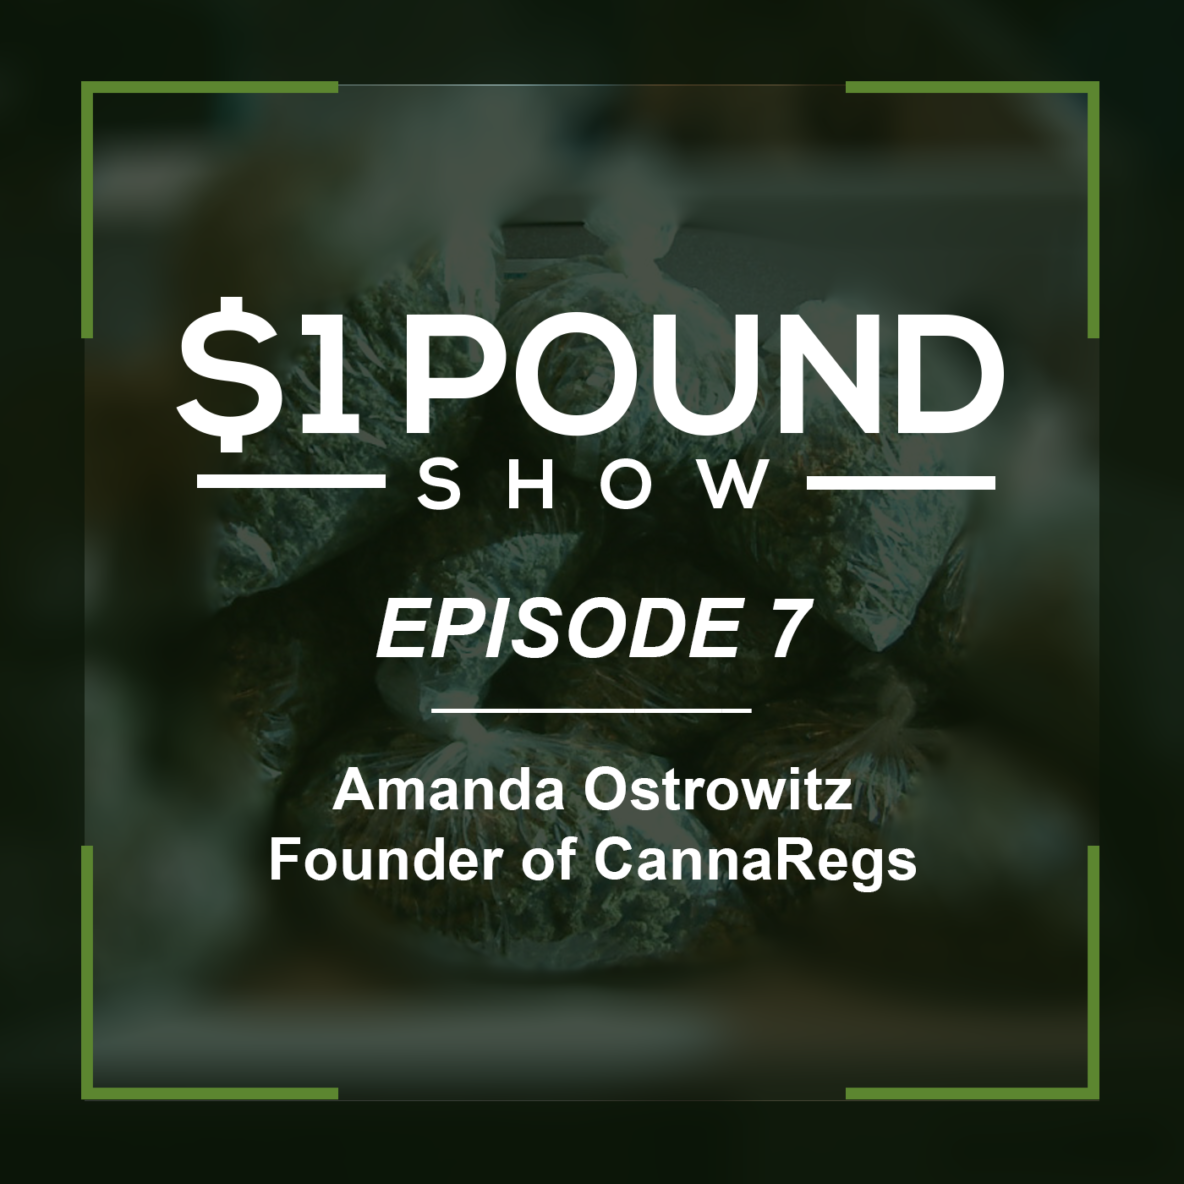 $1 pound show episode 7